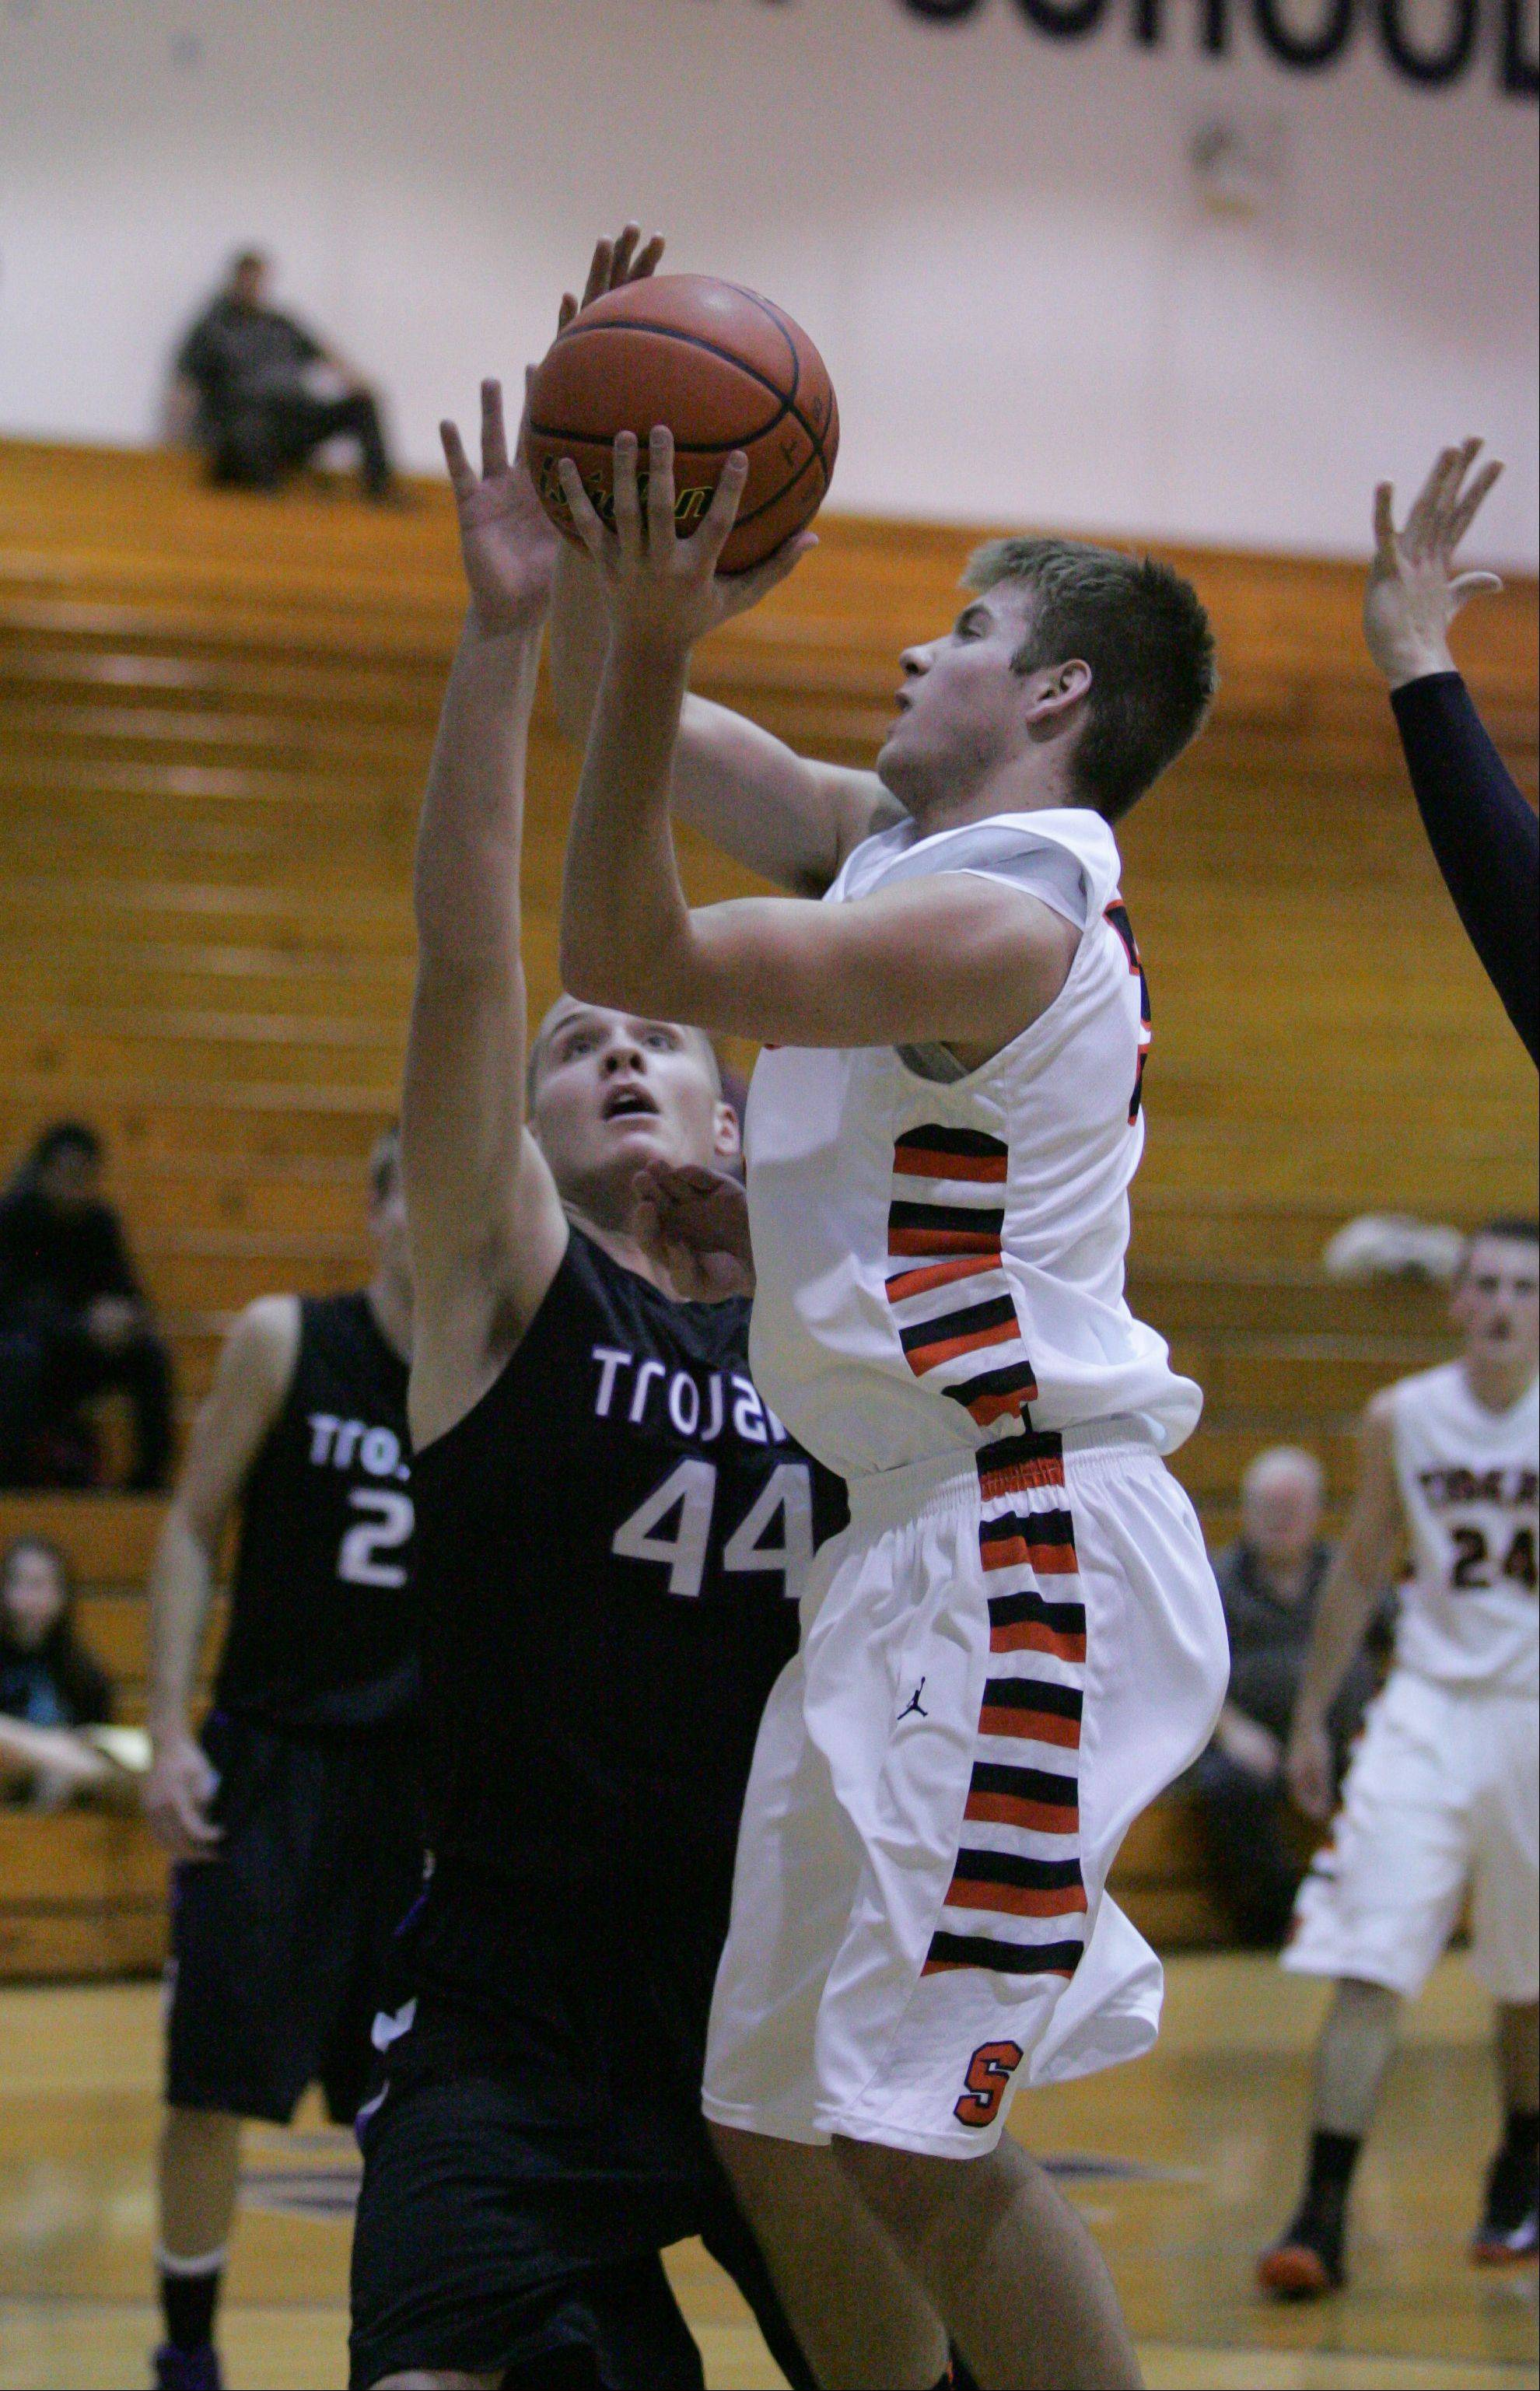 Wheaton Warrenville South High School played Downers Grove North High School Tuesday night for boys basketball at Addison Trail High School in Addison.